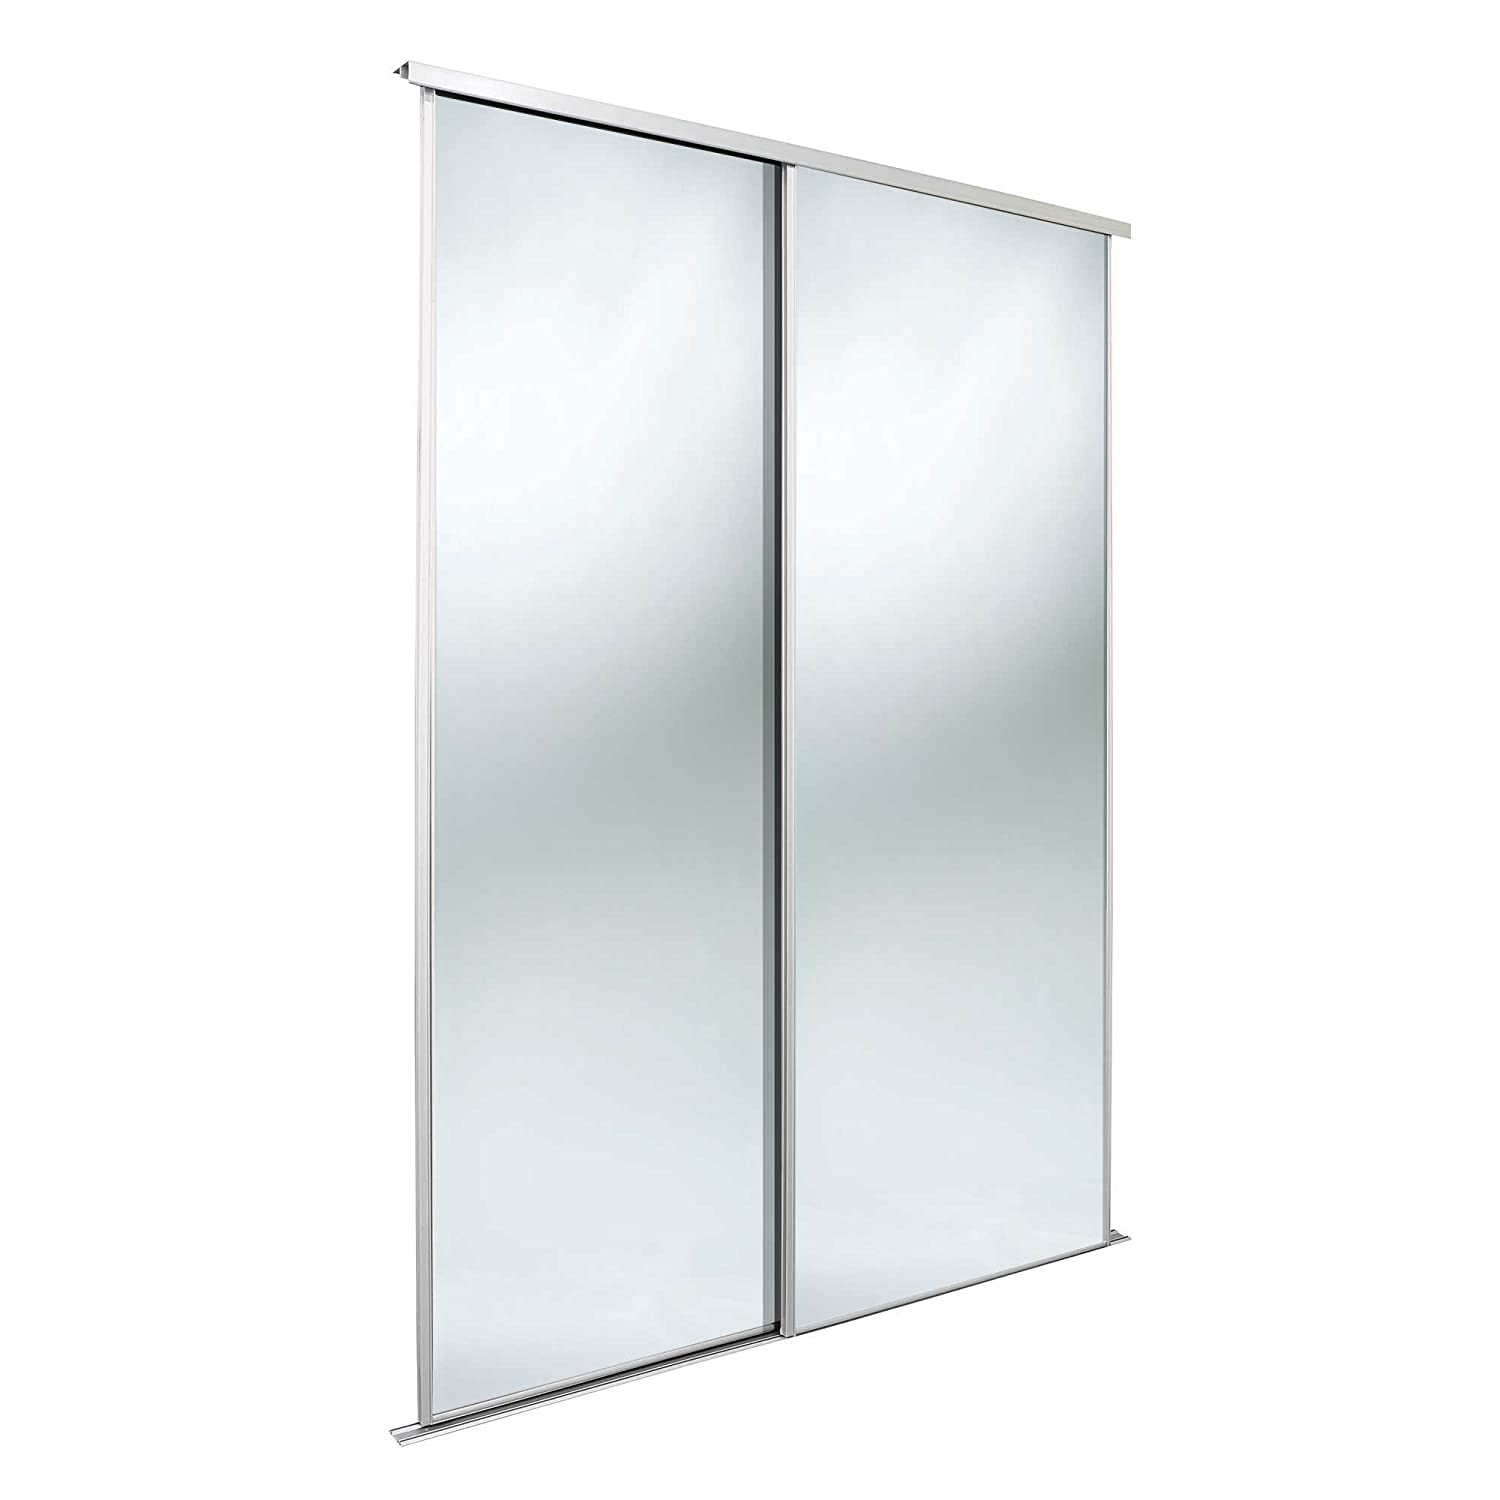 SpacePro Value twinpack 610mm 3mm silver mirror/white frame/trackset Home Decor